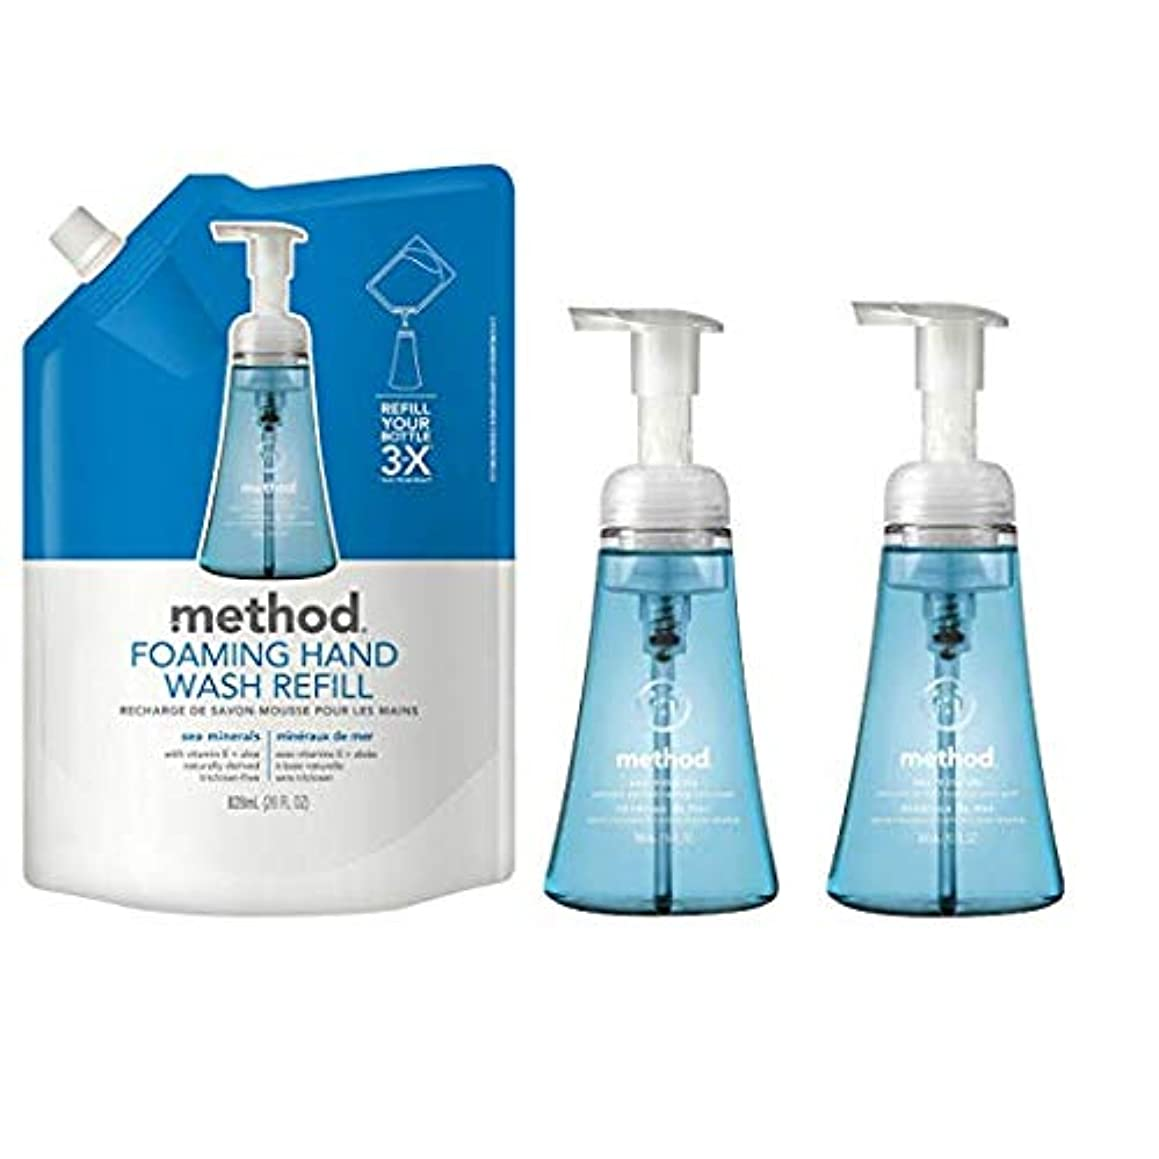 Method Foaming Hand Soap Bundle with Two 10 oz. Dispensers & One 28 oz. Refill | Naturally Derived Hand Soap (Sea Minerals)